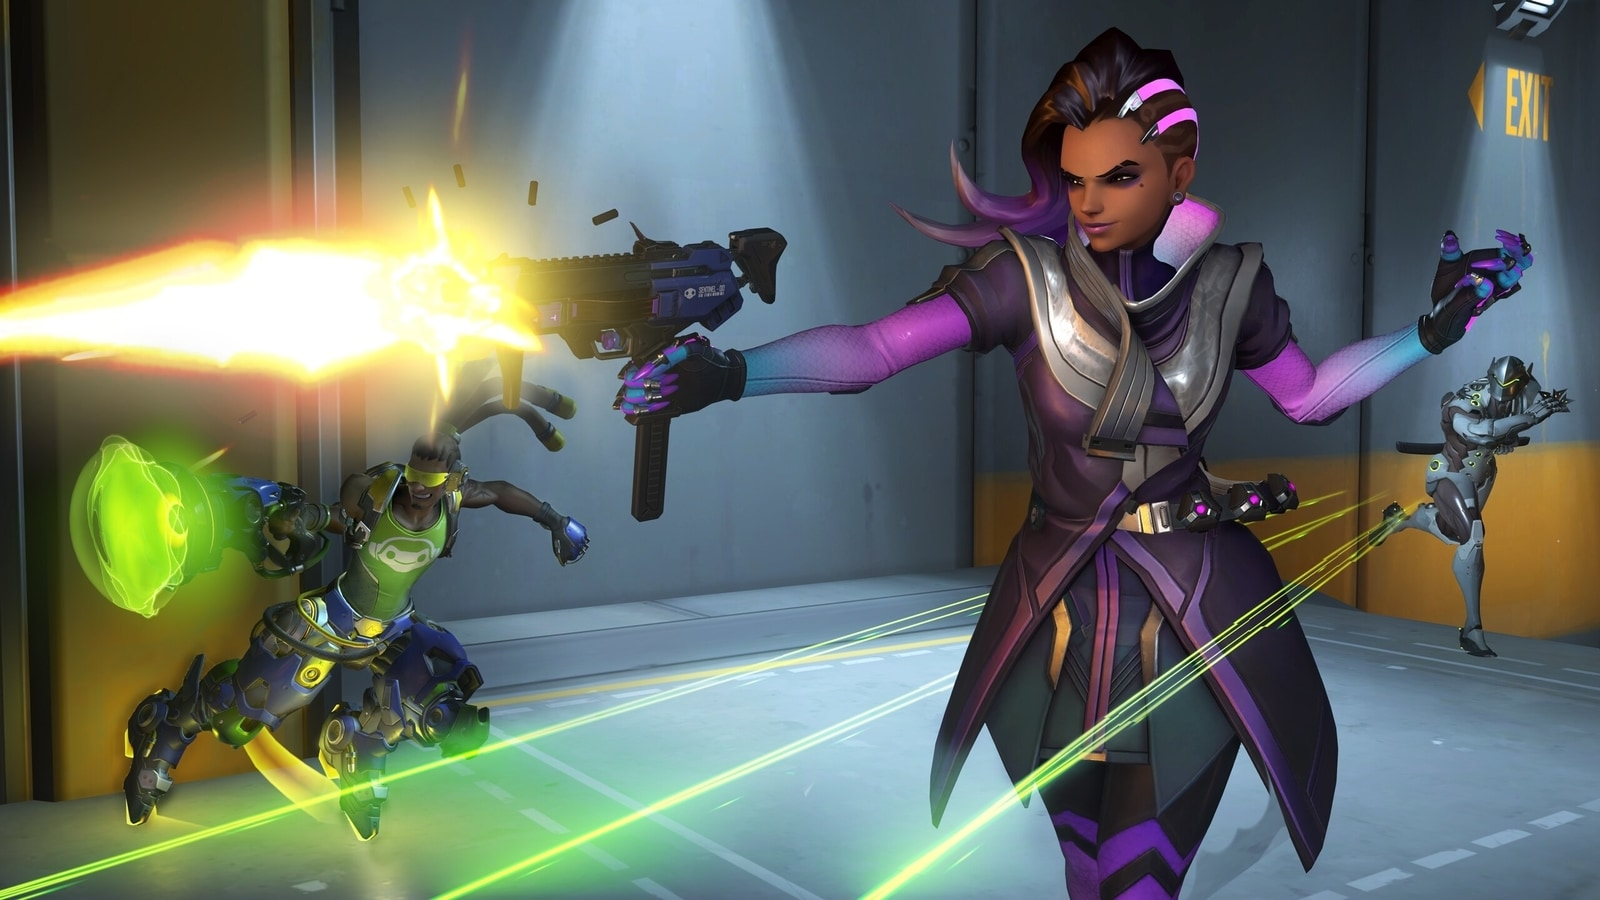 hindustantimes.com - HT Tech - Blizzard, IBM use AI to find the best Overwatch players